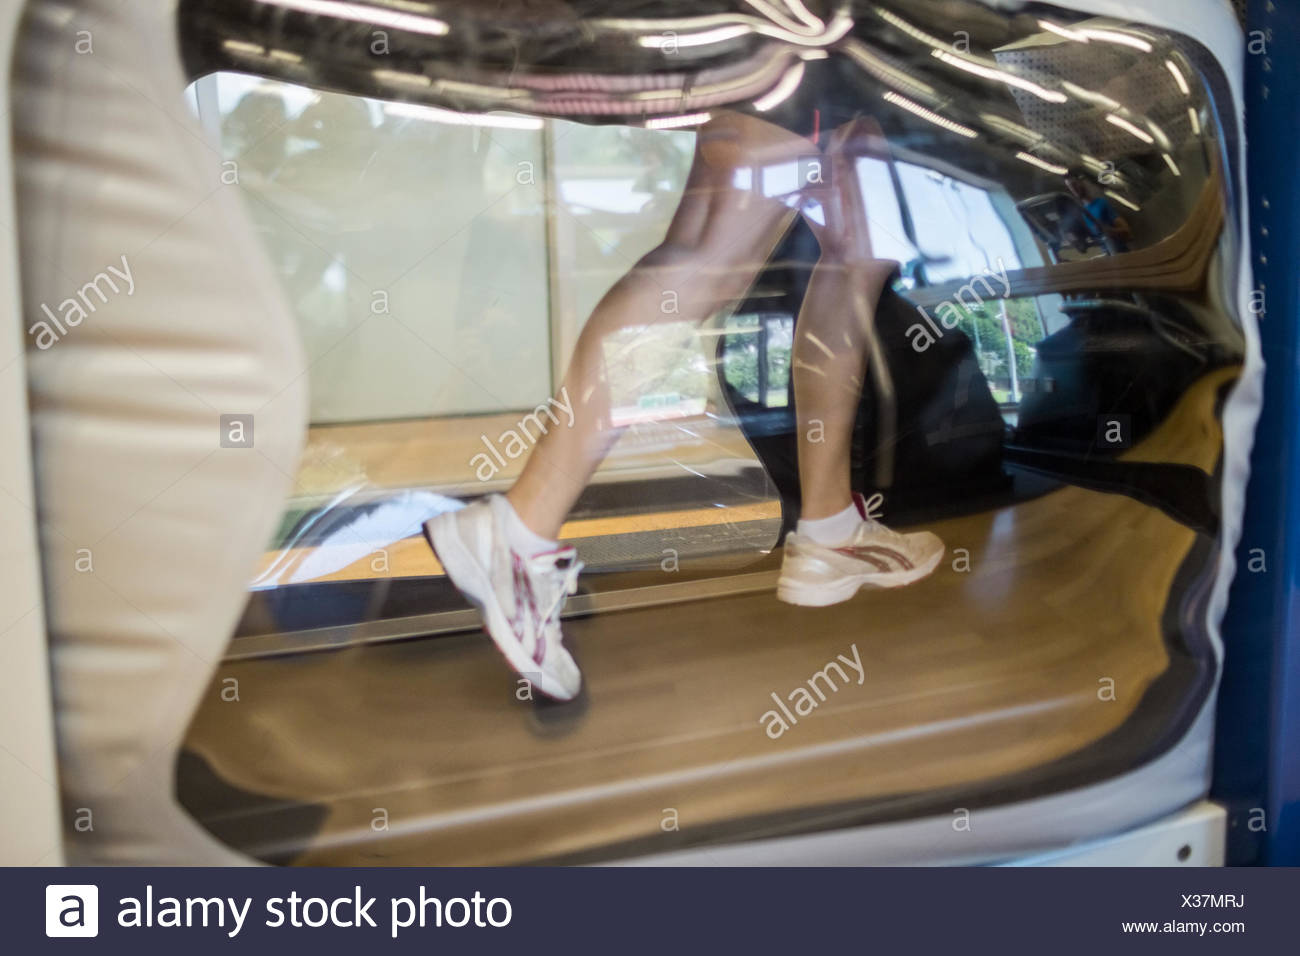 Athlete working out on an anti gravity treadmill - Stock Image